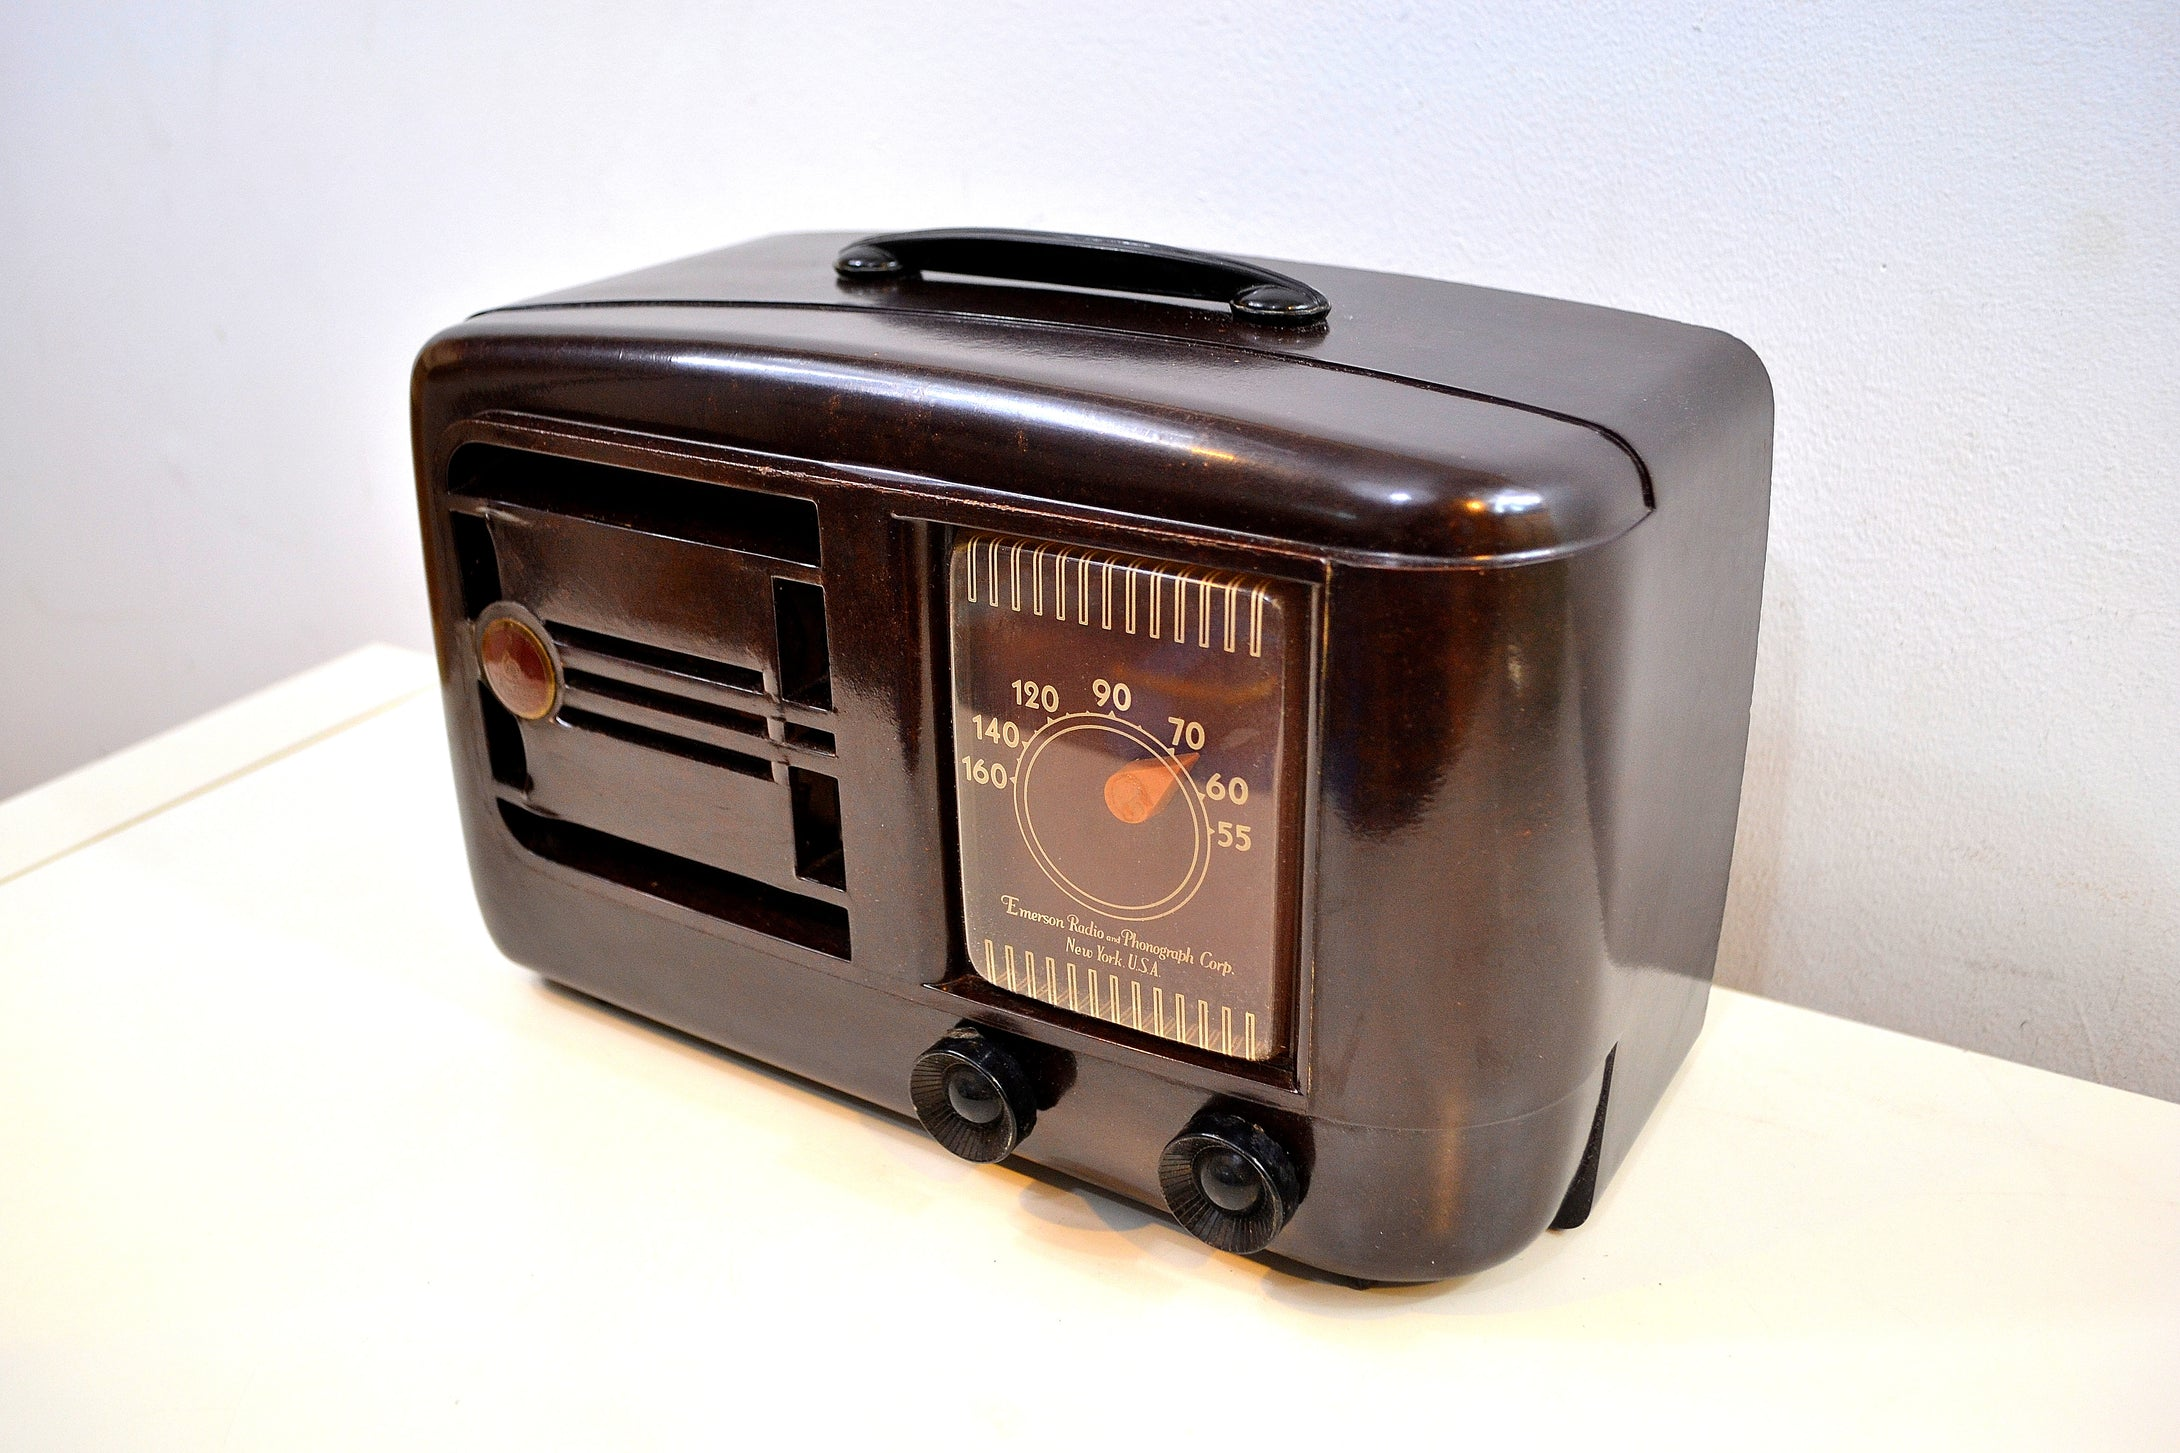 Umber Brown Bakelite 1946 Emerson Model 507 AM Tube Radio Golden Age of Radio Beauty!